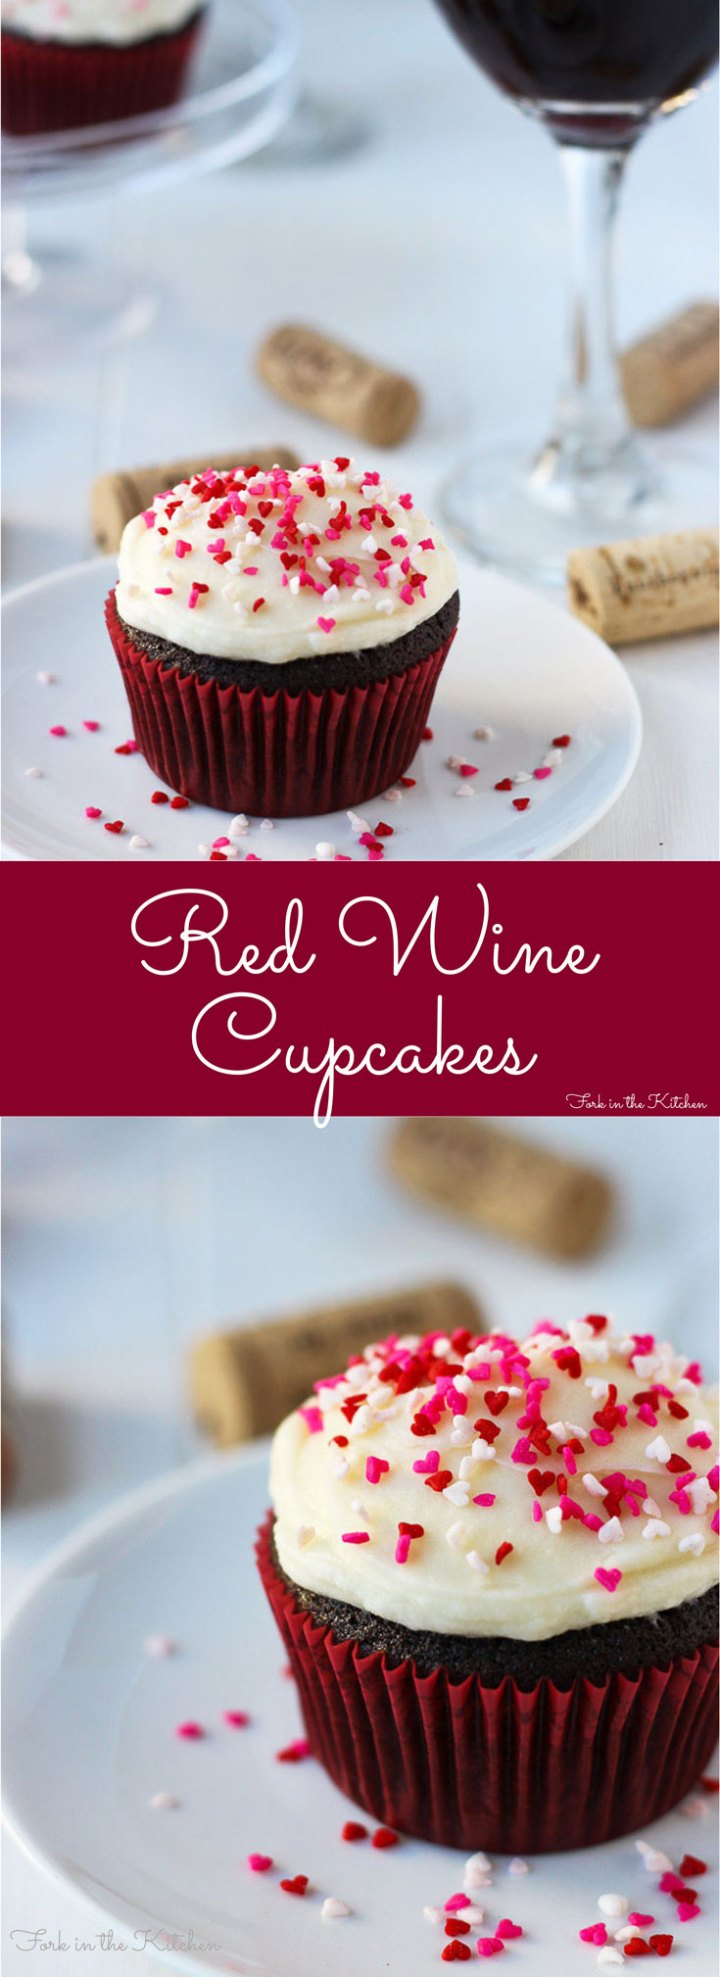 Red Wine Cupcakes - there's nothing better than chocolate and wine!